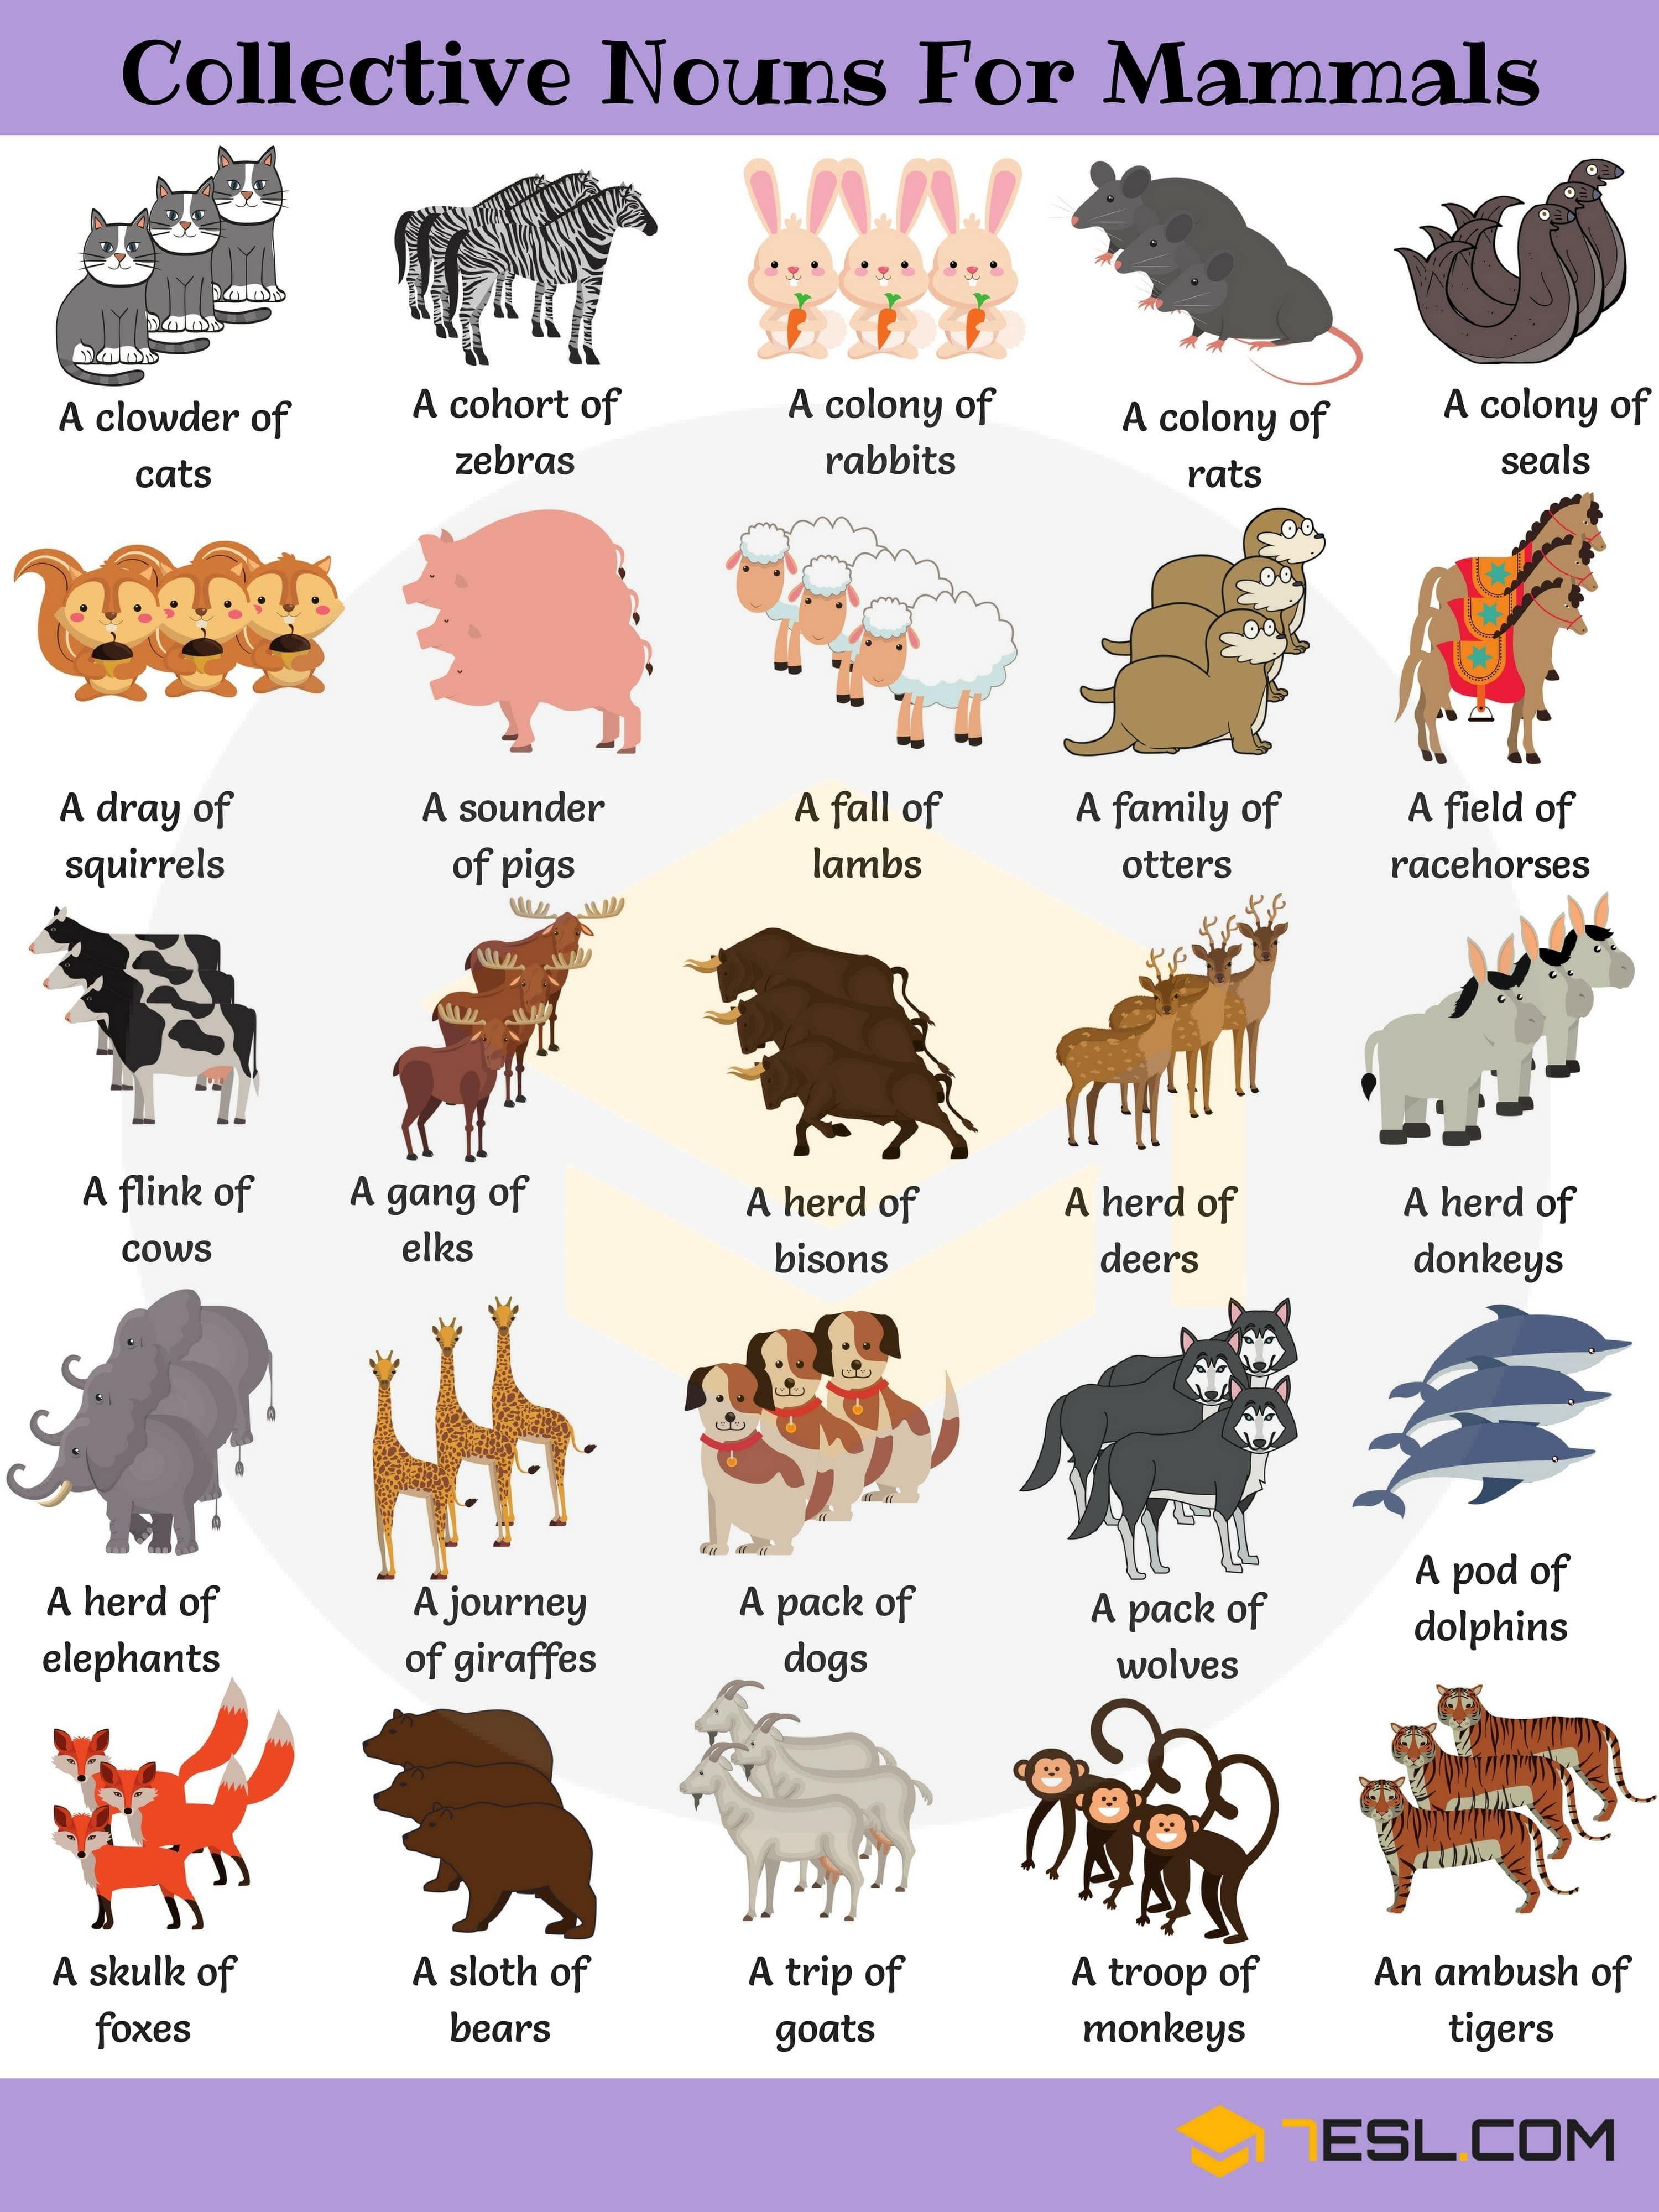 Animal Group Names 250+ Collective Nouns for Animals